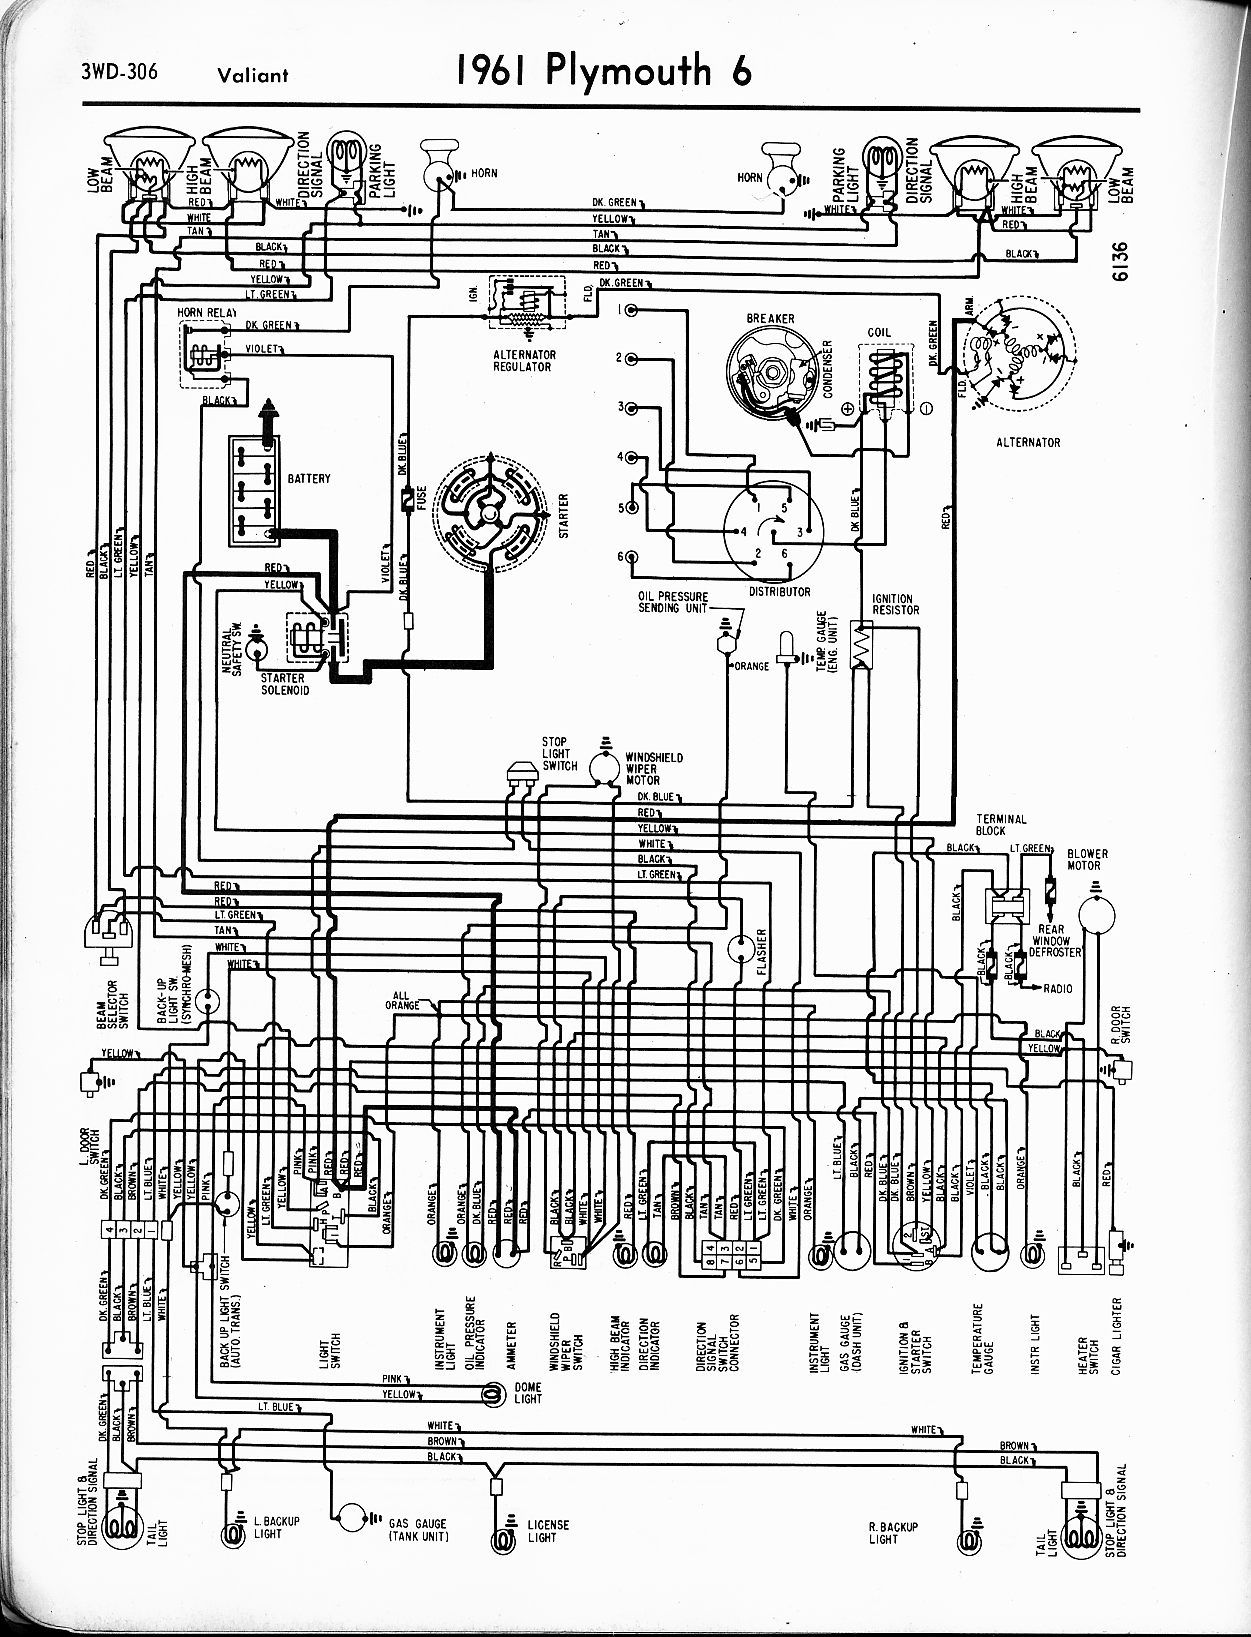 install 1973 plymouth valiant wiring diagram